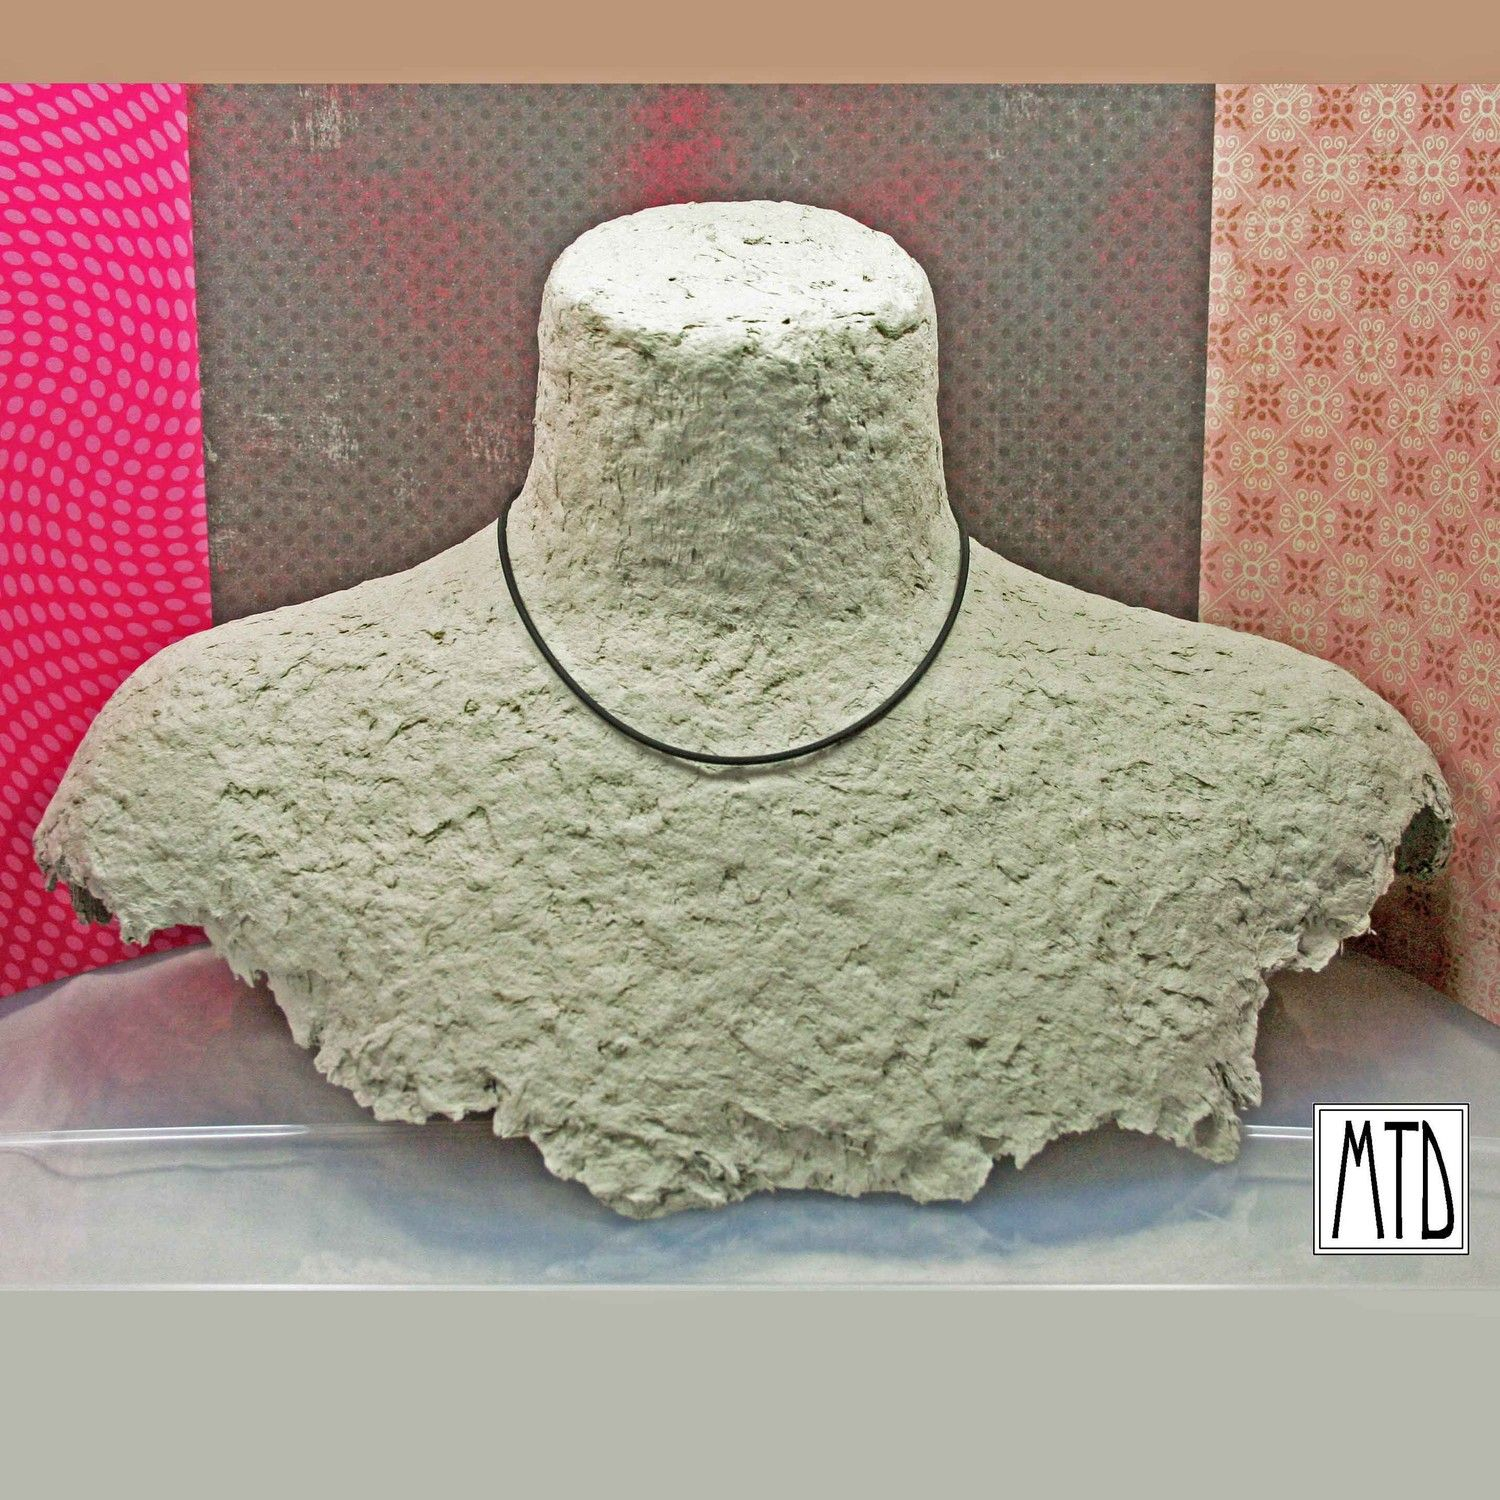 Papier Mache Necklace Bust Display Diy Jewelry Display Creative Jewelry Displays Craft Display